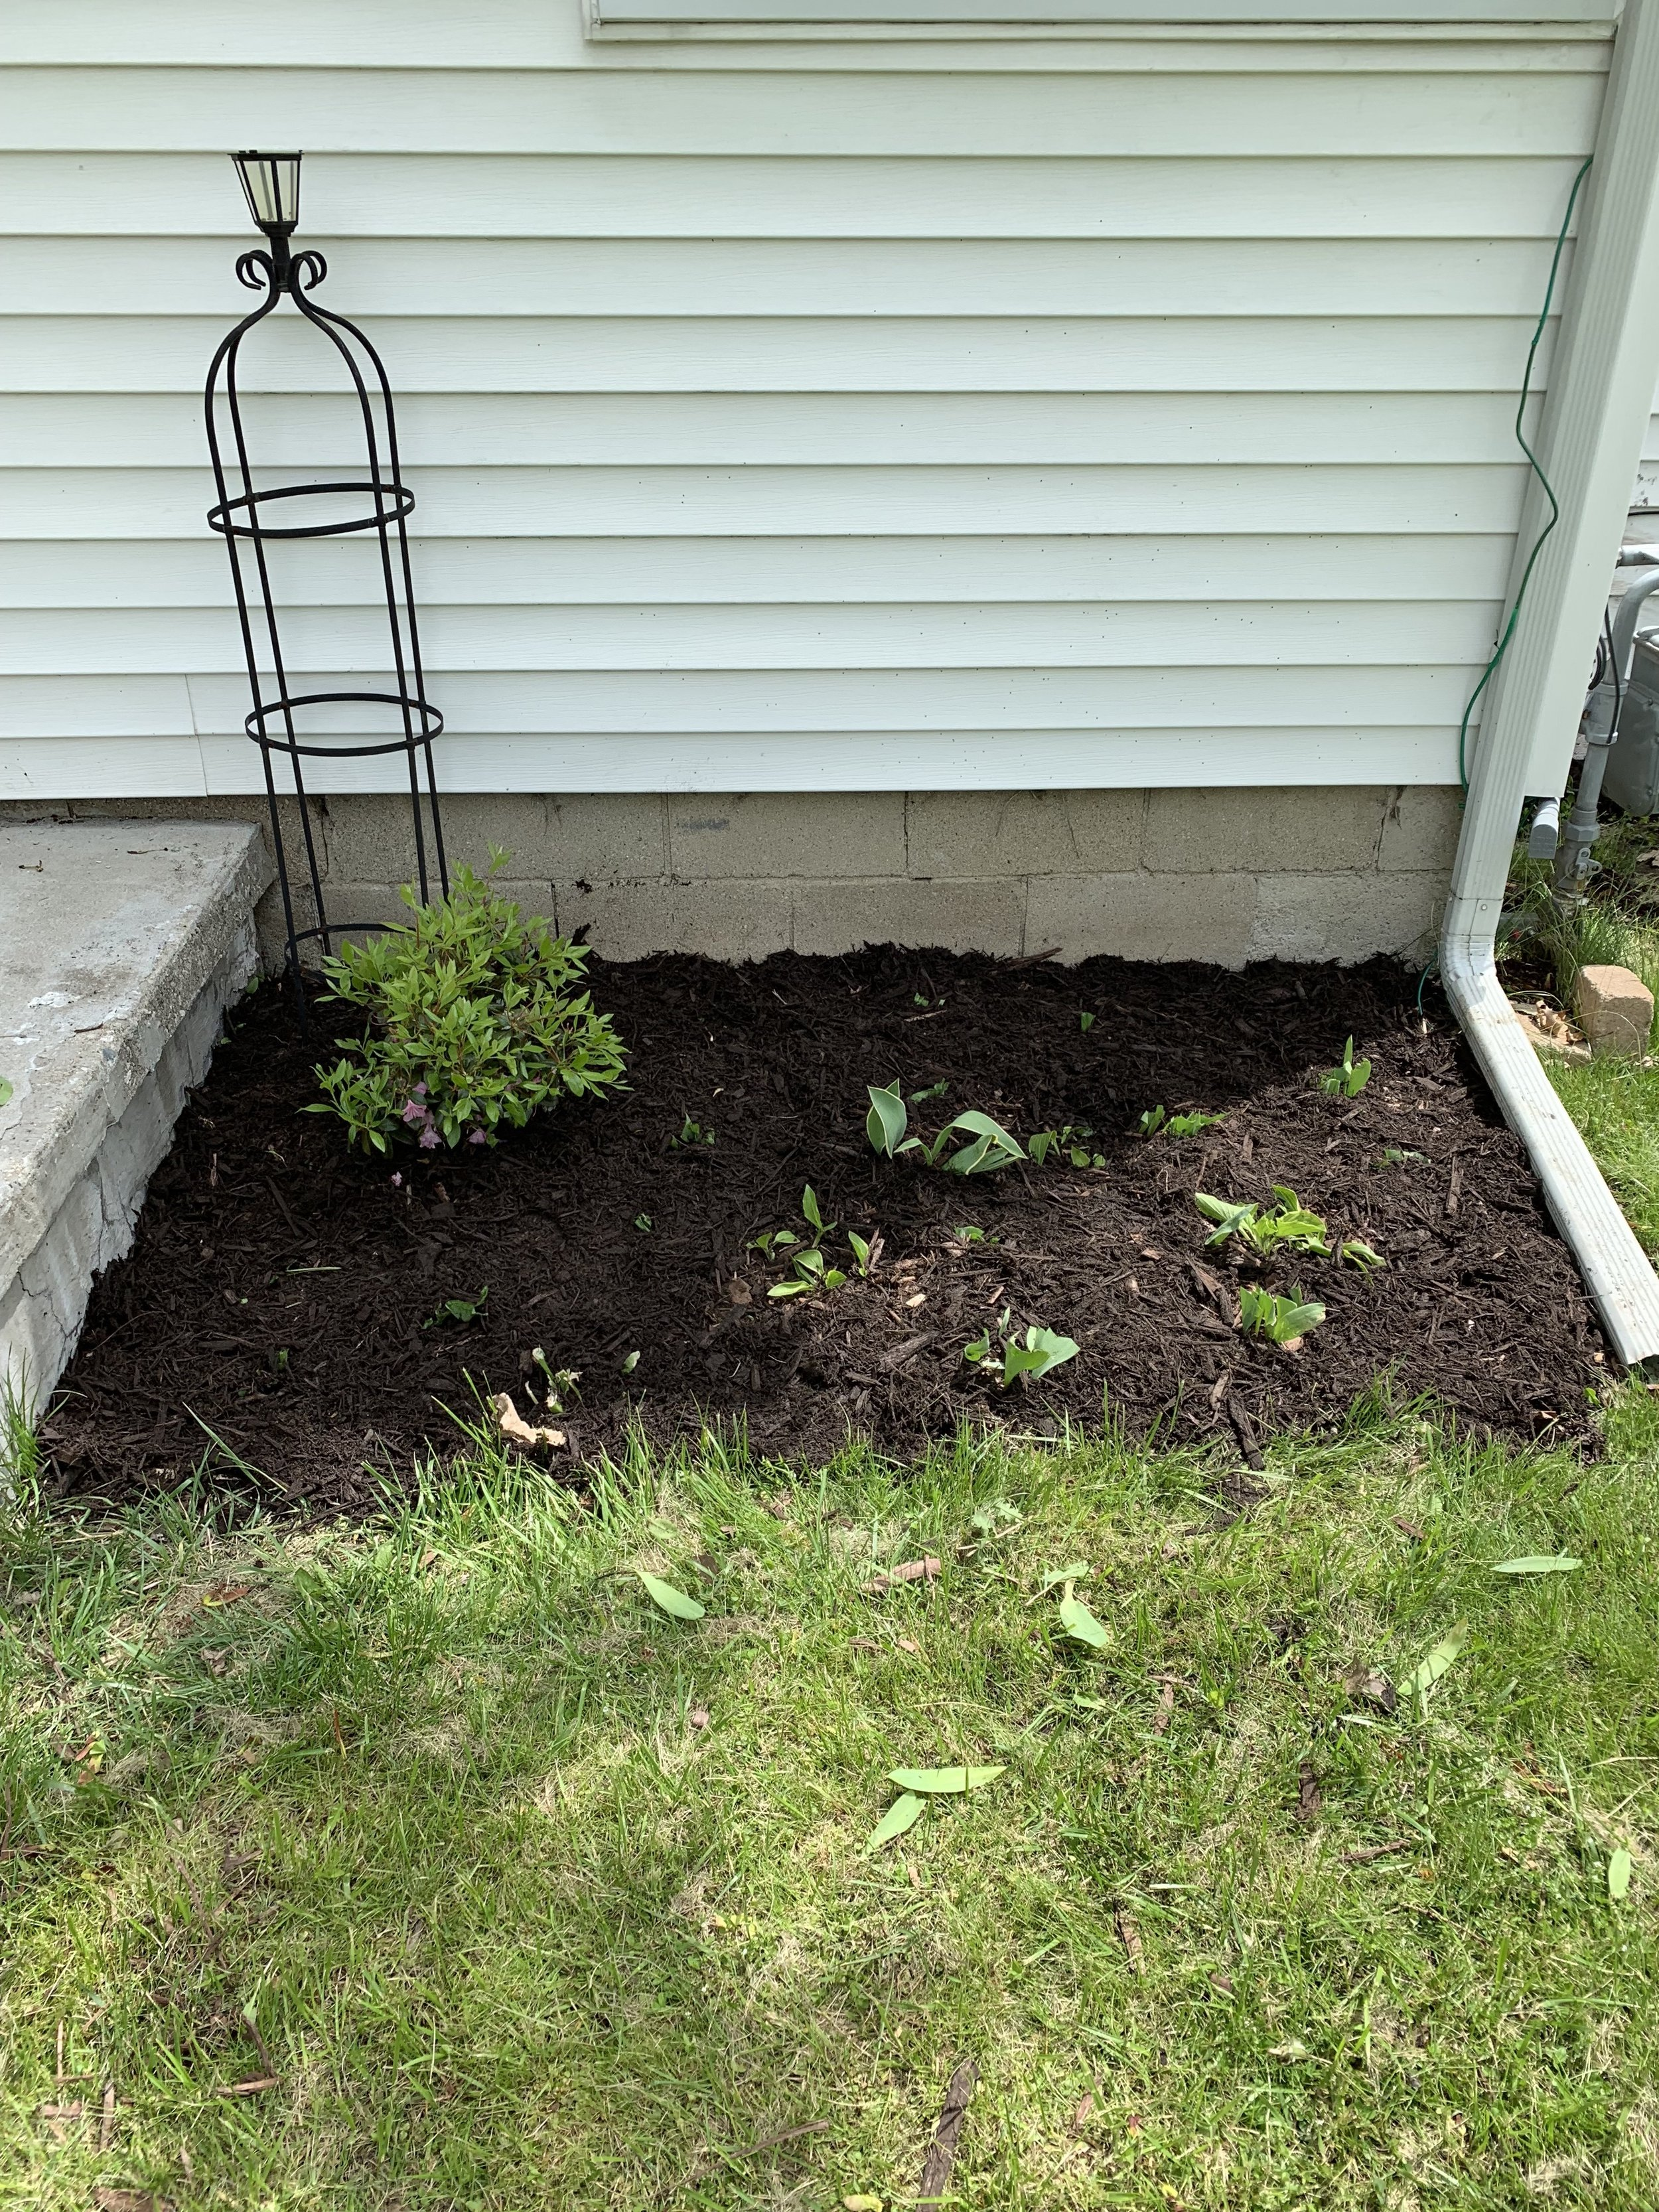 Transplanting hosta to spruce up the curb appeal at the Woody rental property